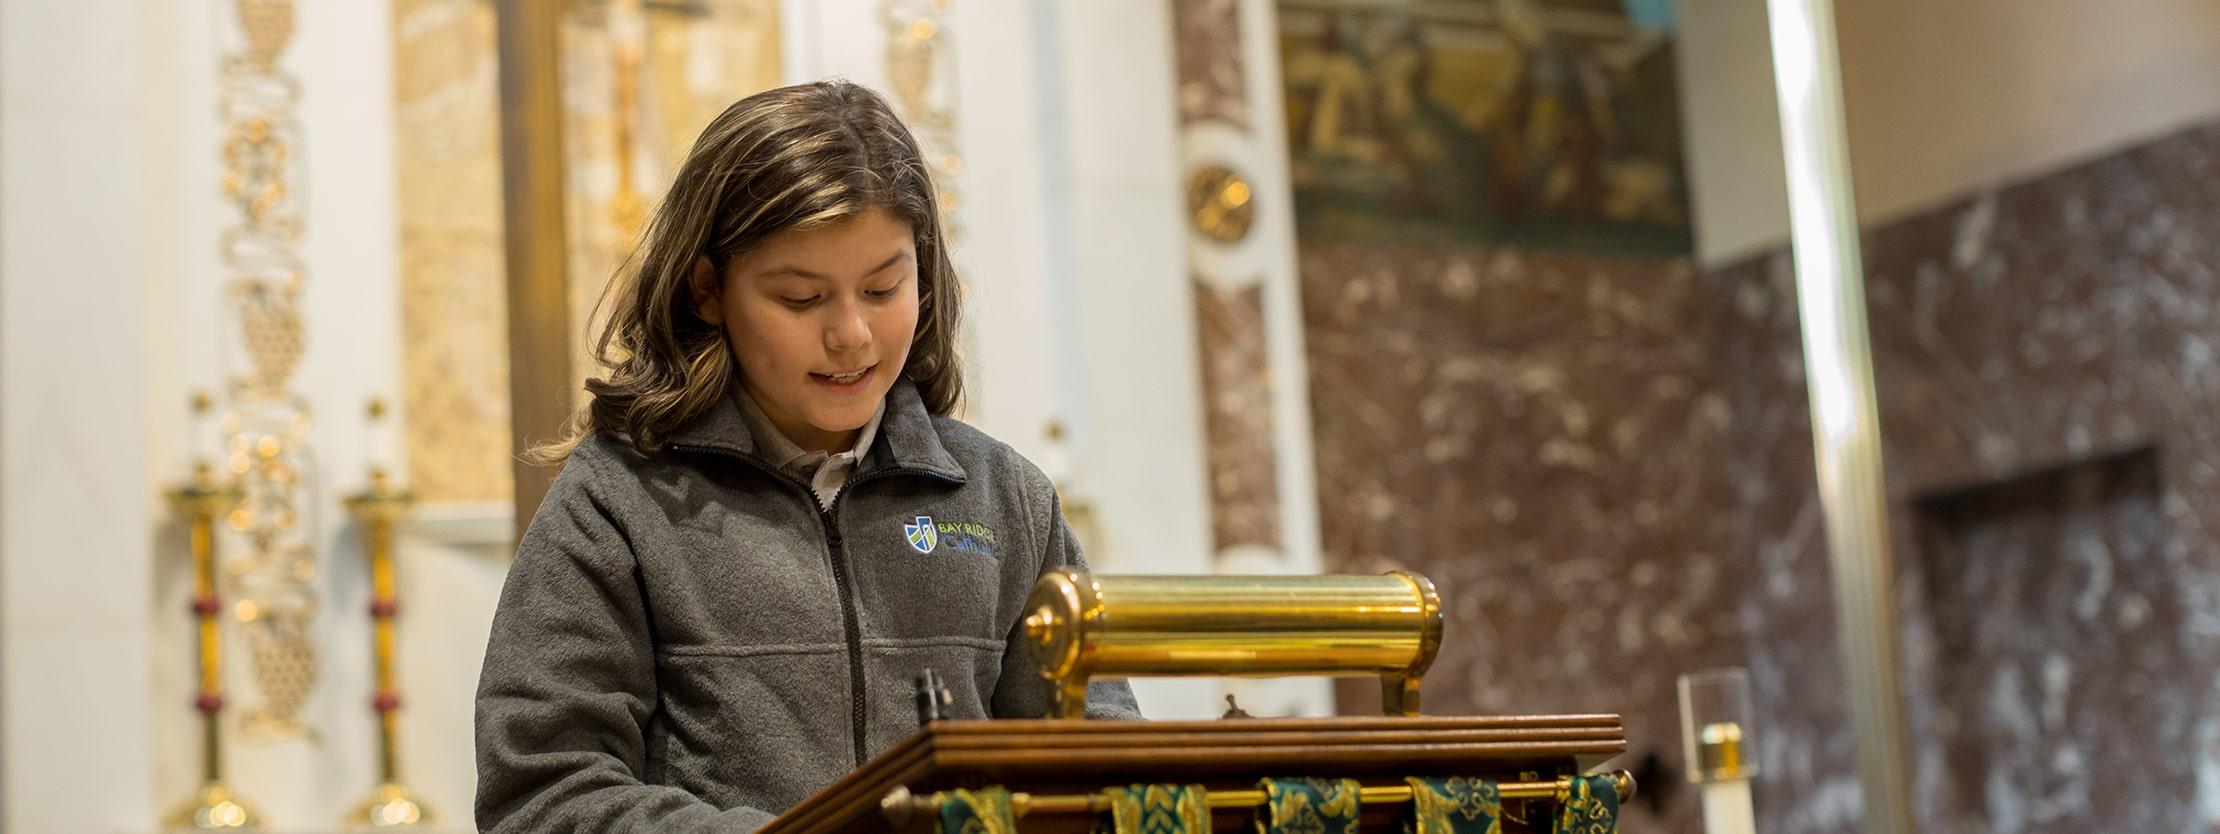 Bay Ridge Catholic student giving reading in church